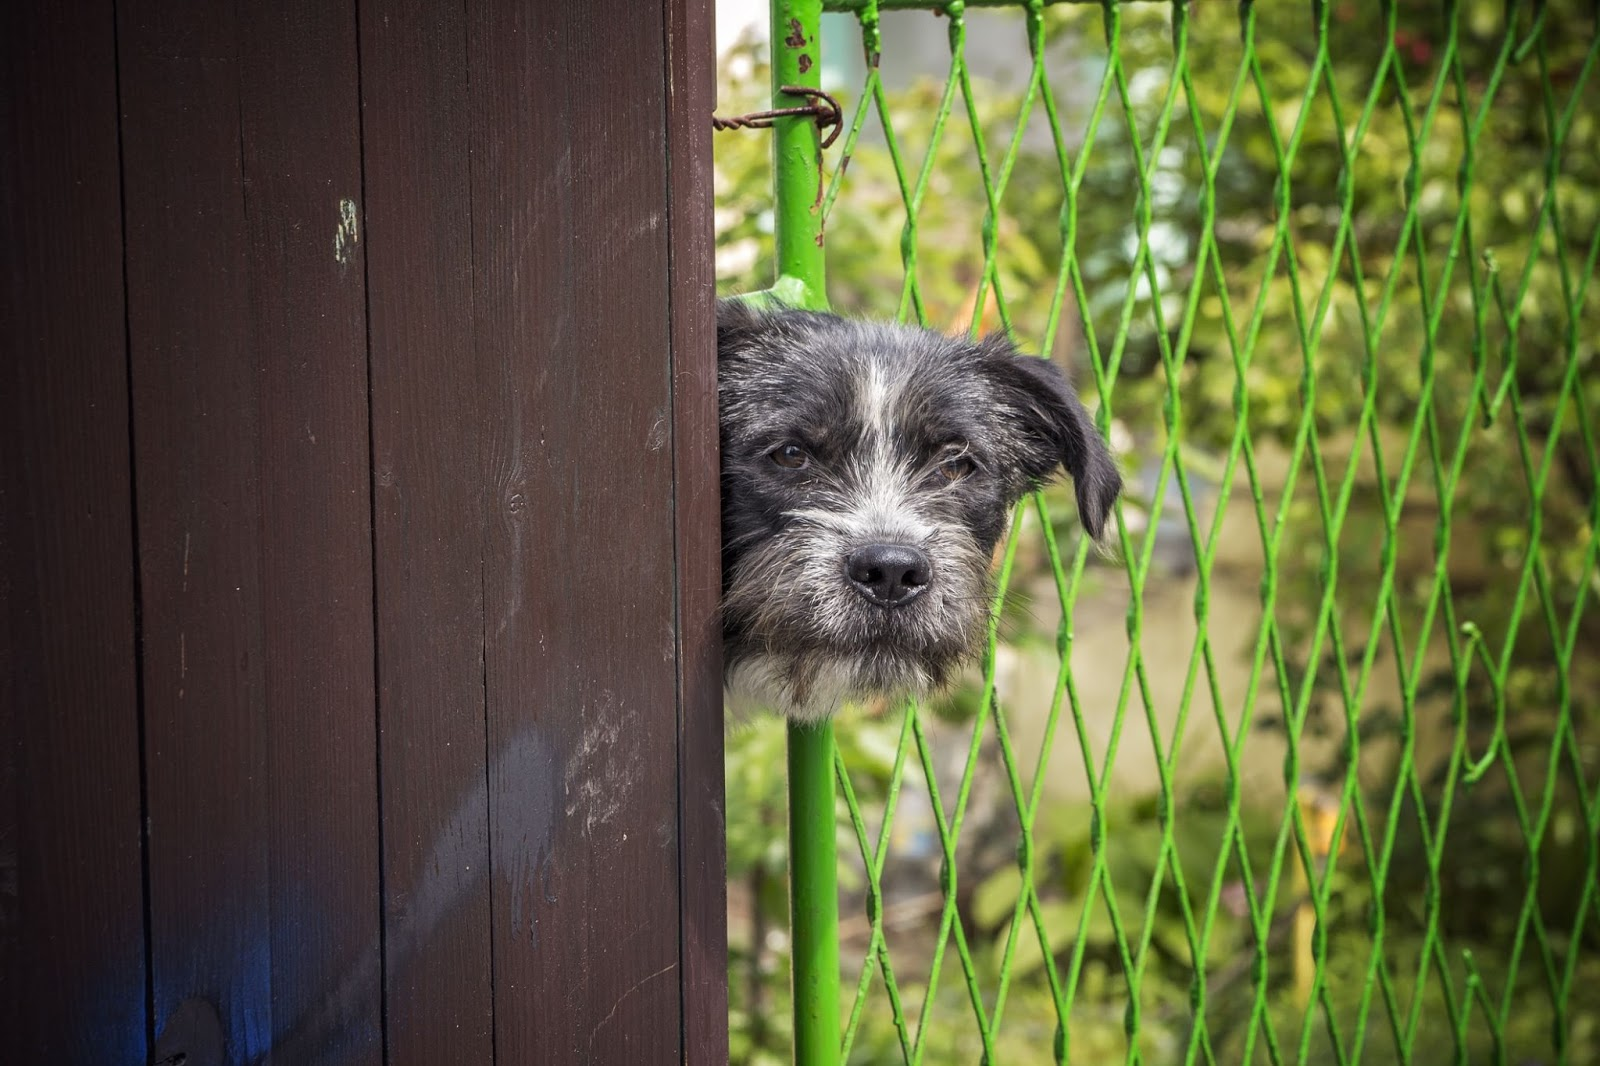 A dog is a nosey neighbor that pokes its head through a fence